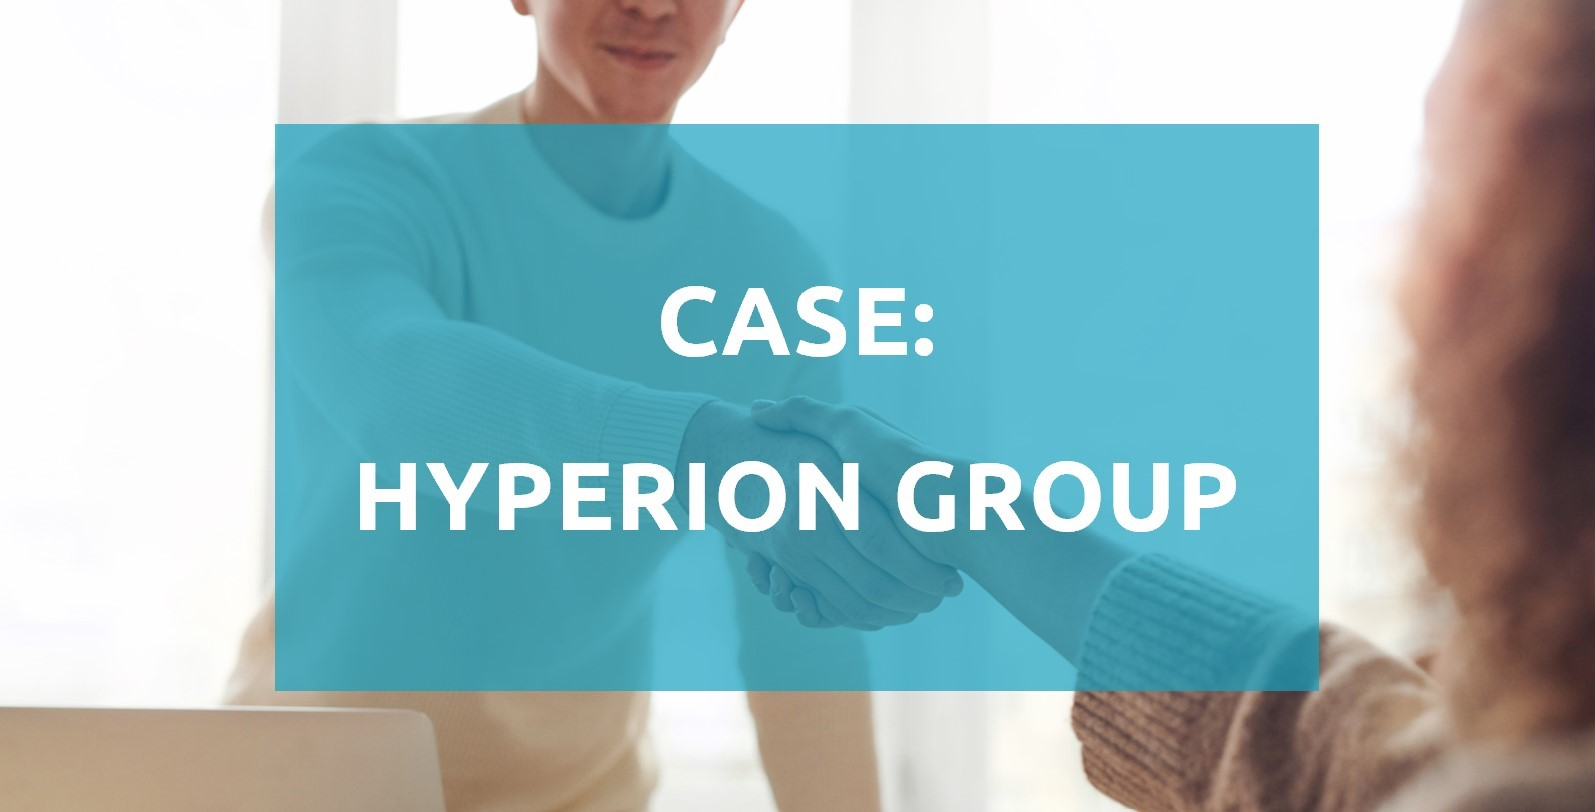 Case Hyperion Group